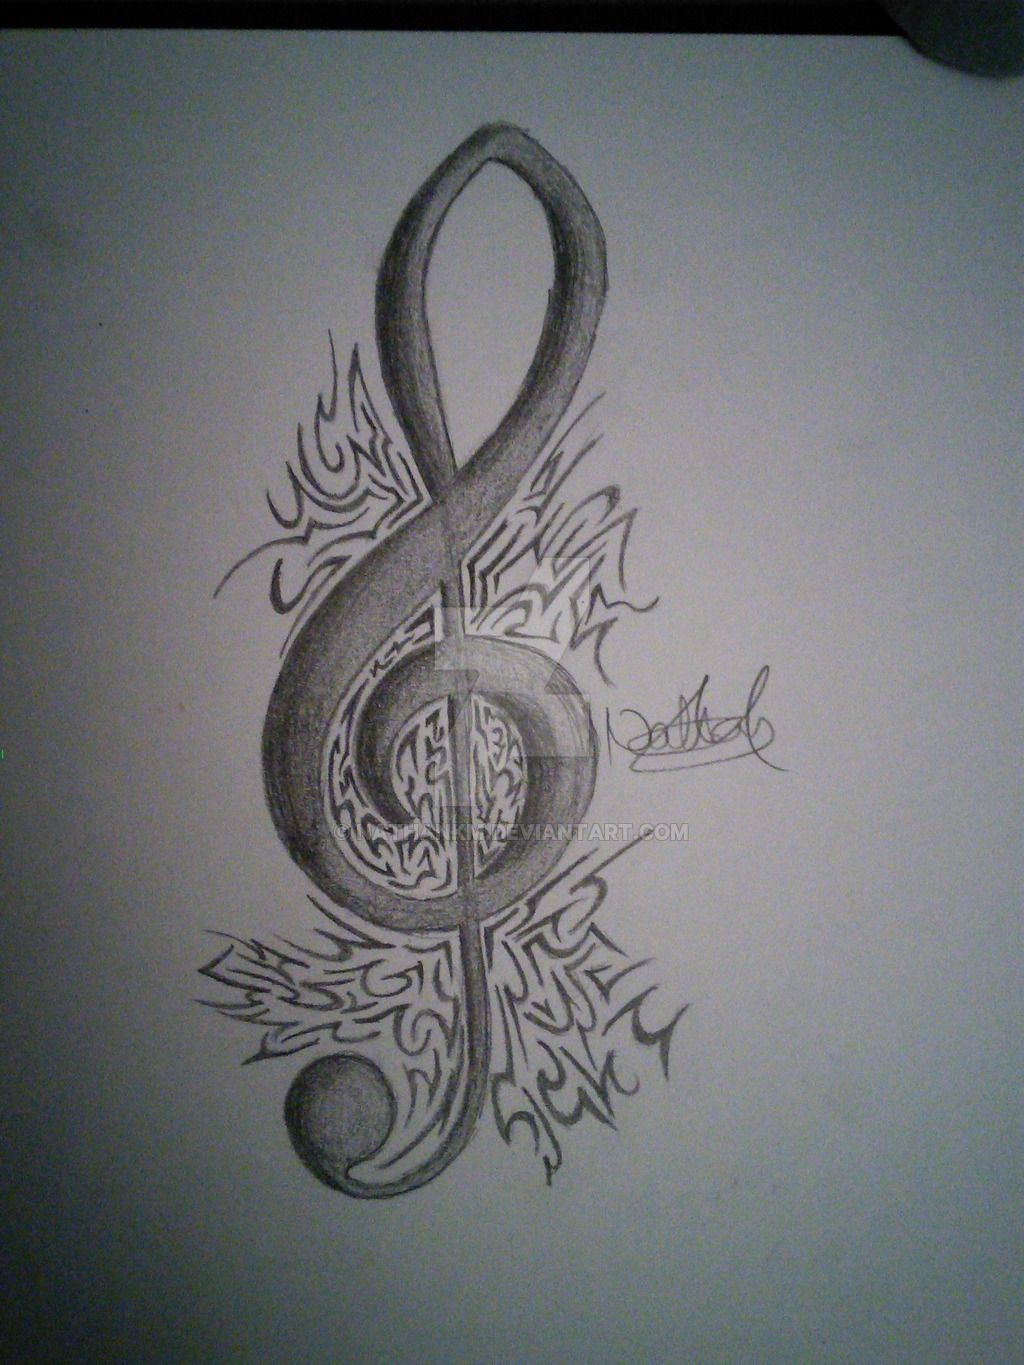 Music Note Tattoos Behind Ear Meaning (2)